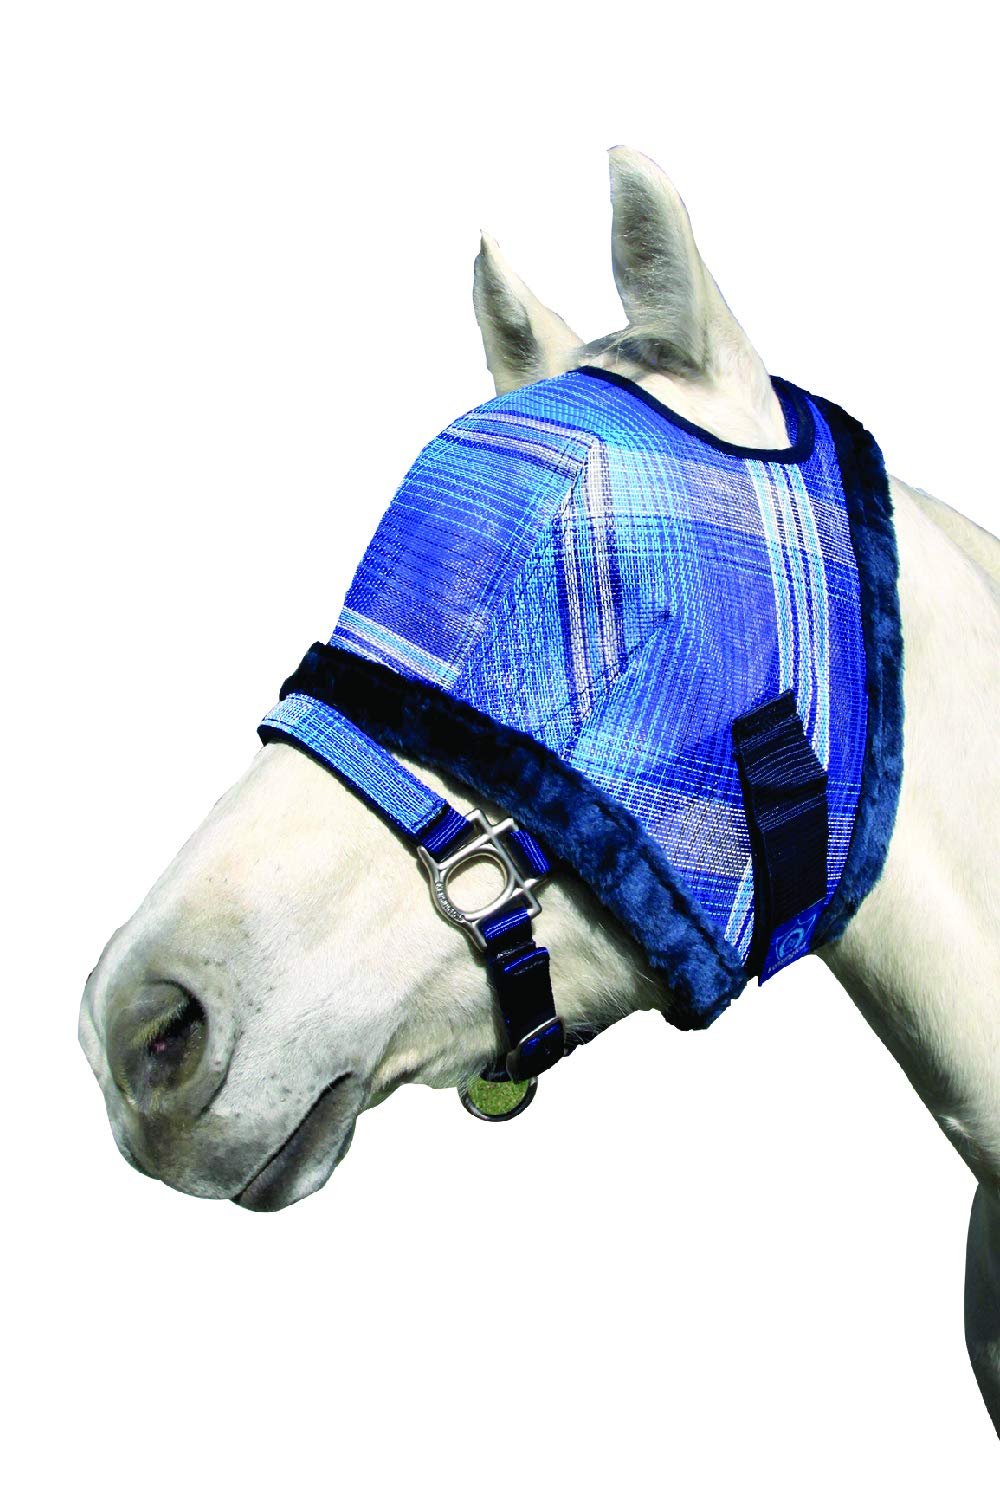 Kensington Fly Mask Fleece Trim for Horses - Protects Face, Eyes from Flies, UV Rays While Allowing Full Visibility - Breathable Non Heat Transferring, Perfect Year Round, (Small Mini, Kentucky Blue) by Kensington Protective Products